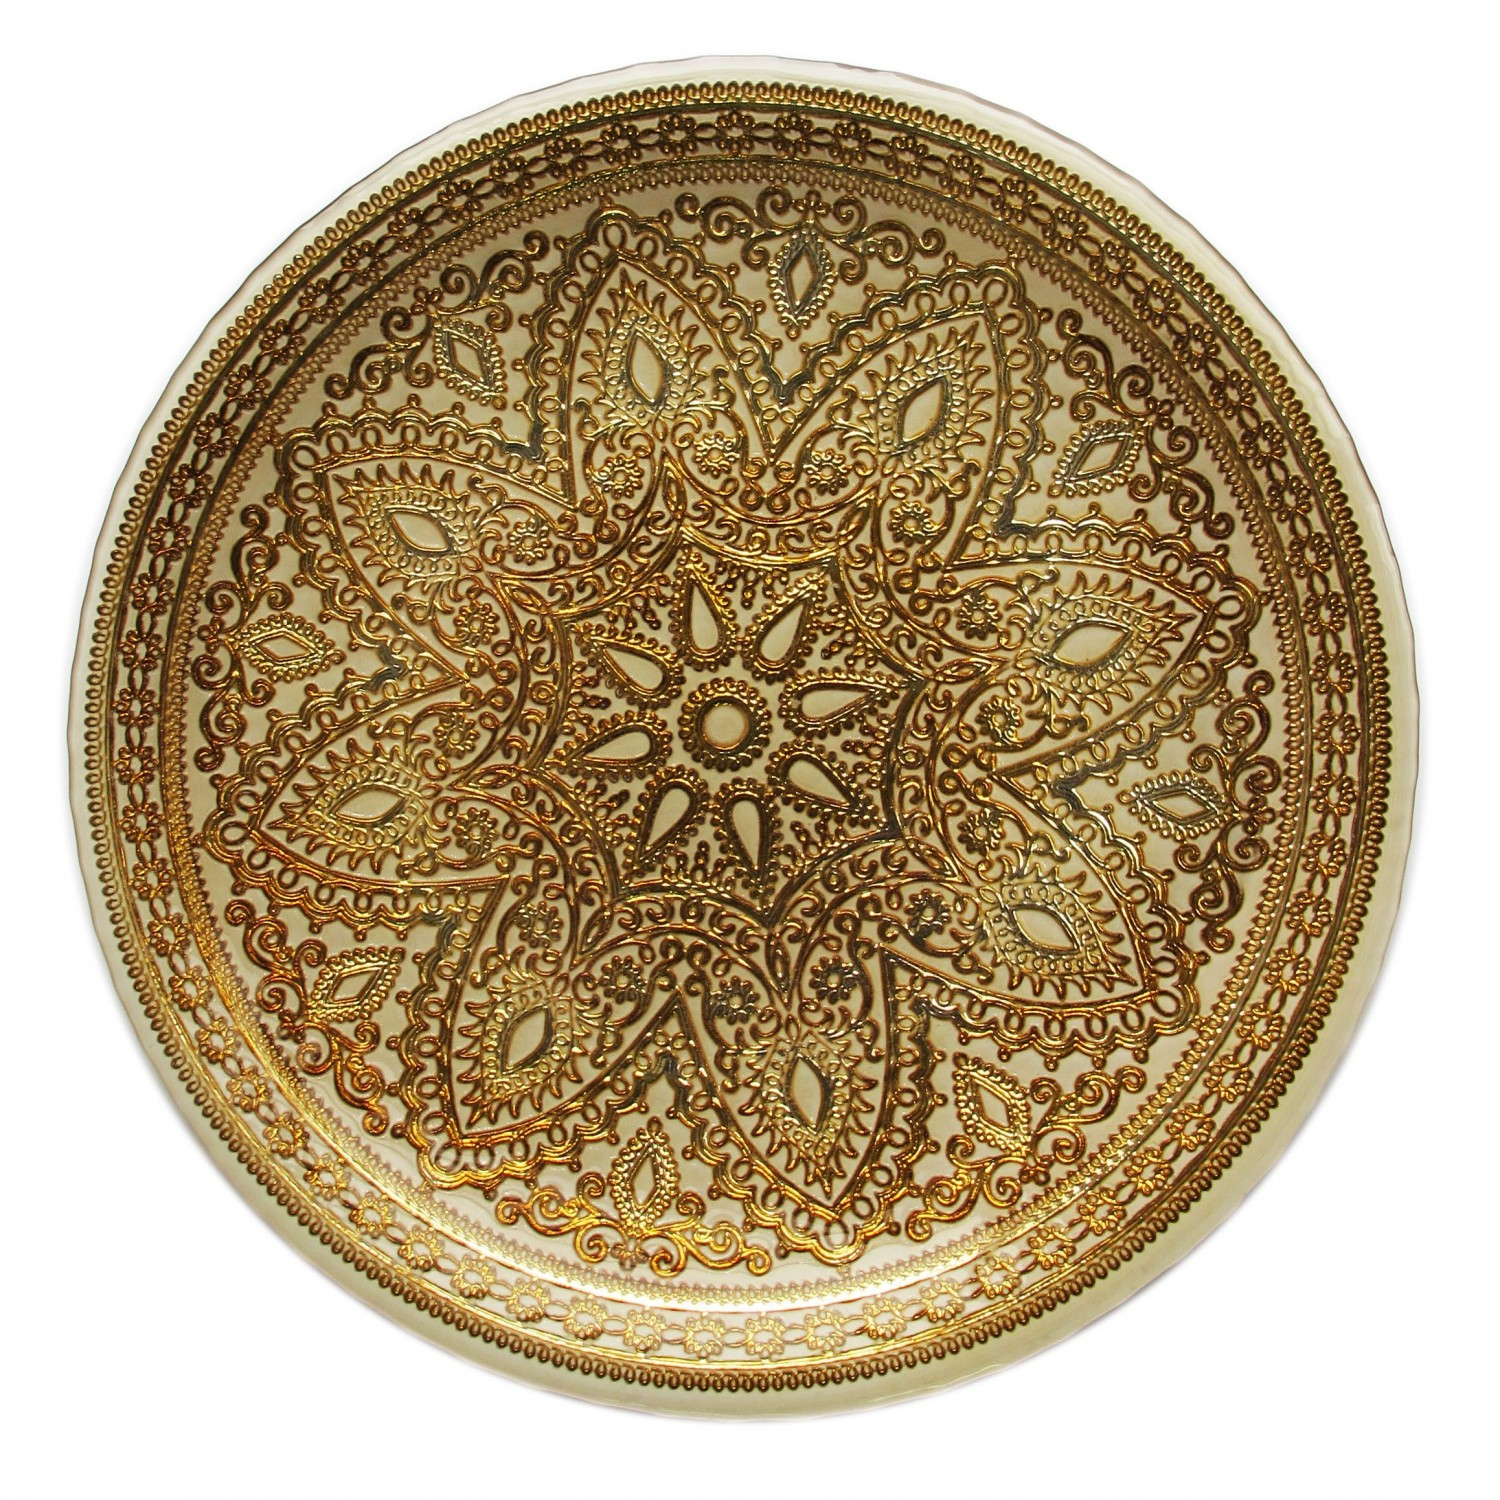 The Jay Companies 1900051 Round Divine Gold Glass Charger Plate 13""